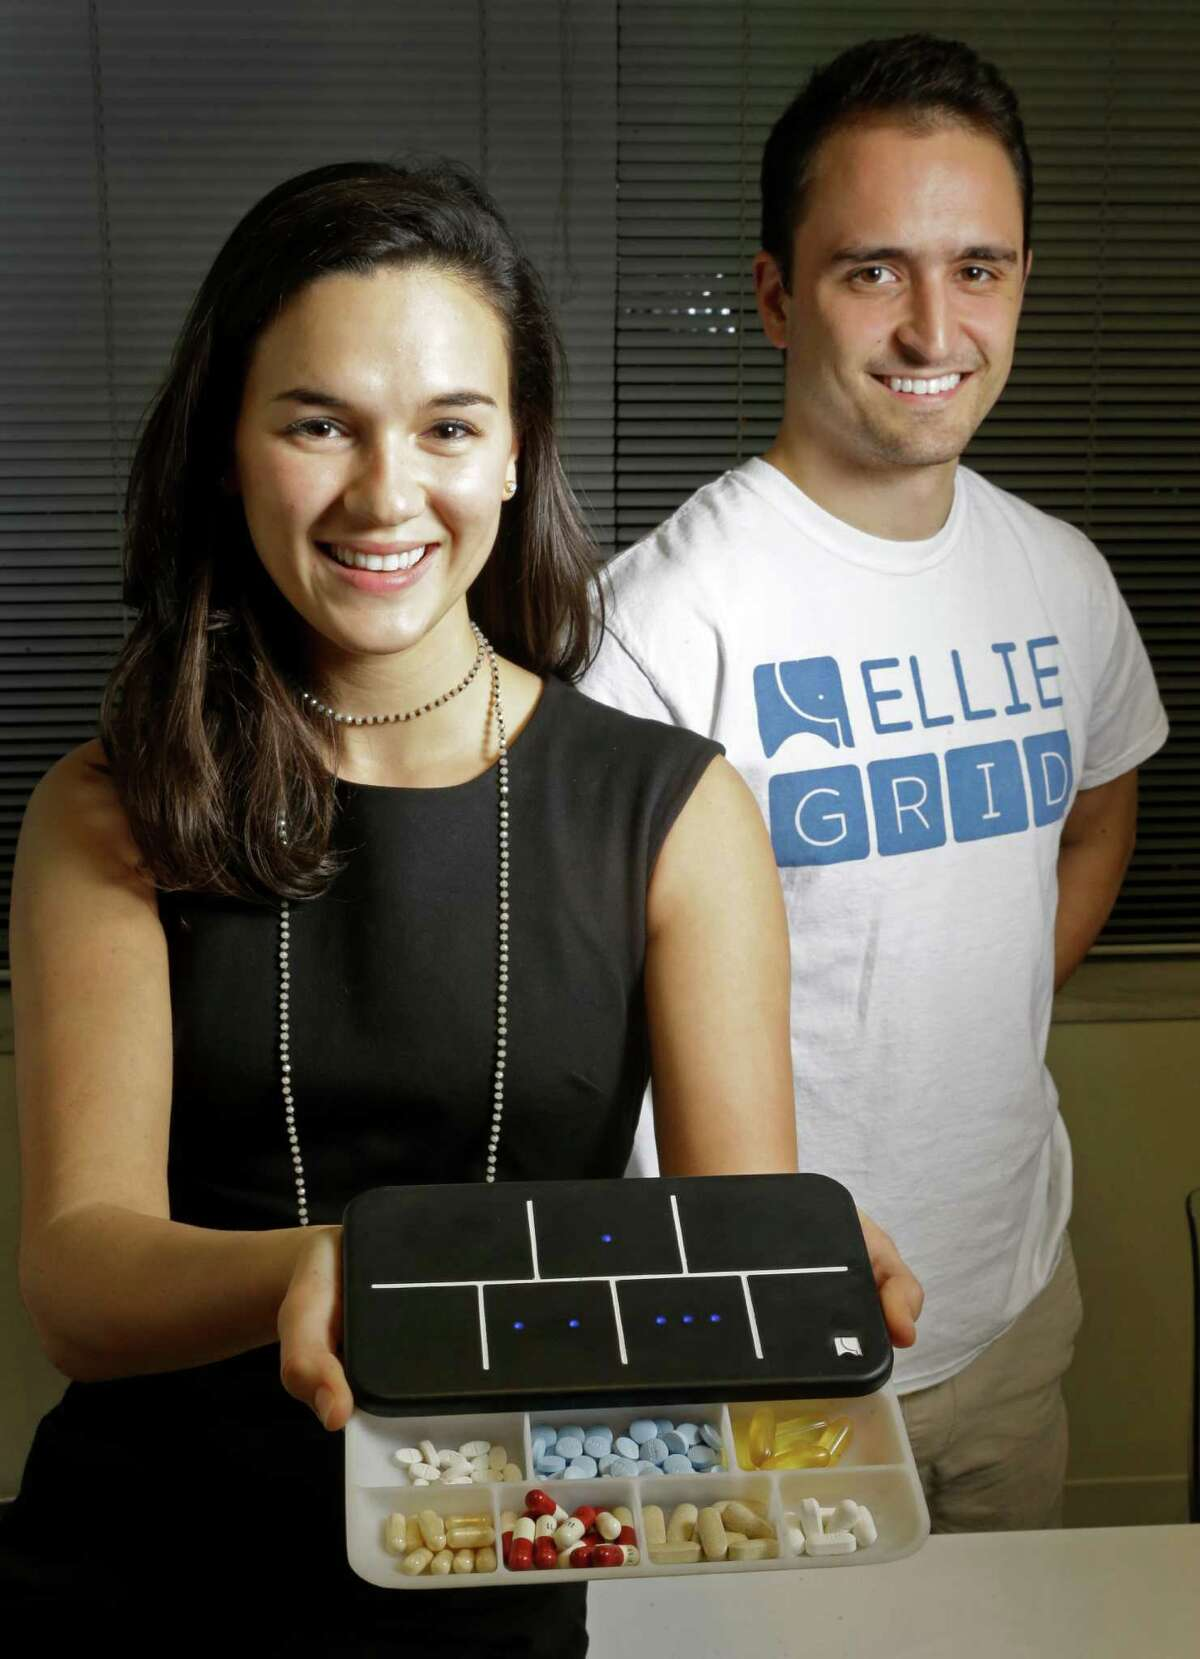 Regina Vatterott, left, and Abe Matamoros, right, pose with a prototype of Ellie Grid, a smart pillbox, which was designed to make taking pills and organizing them more efficient shown Thursday, Dec. 1, 2016, in Houston. ( Melissa Phillip / Houston Chronicle )